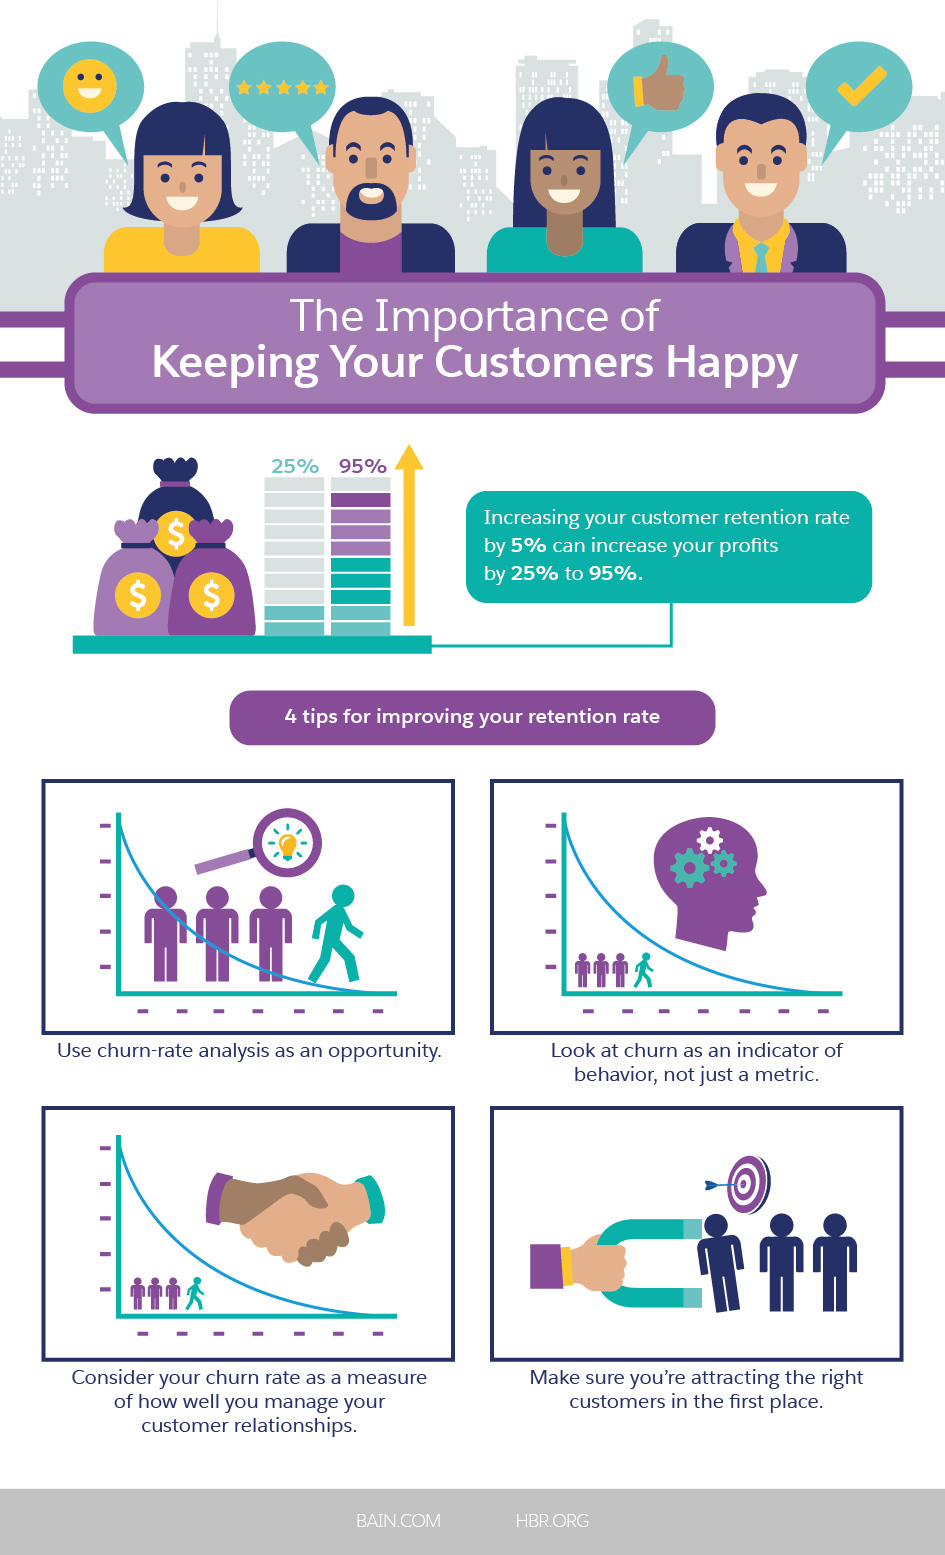 The Importance of Keeping Your Customers Happy